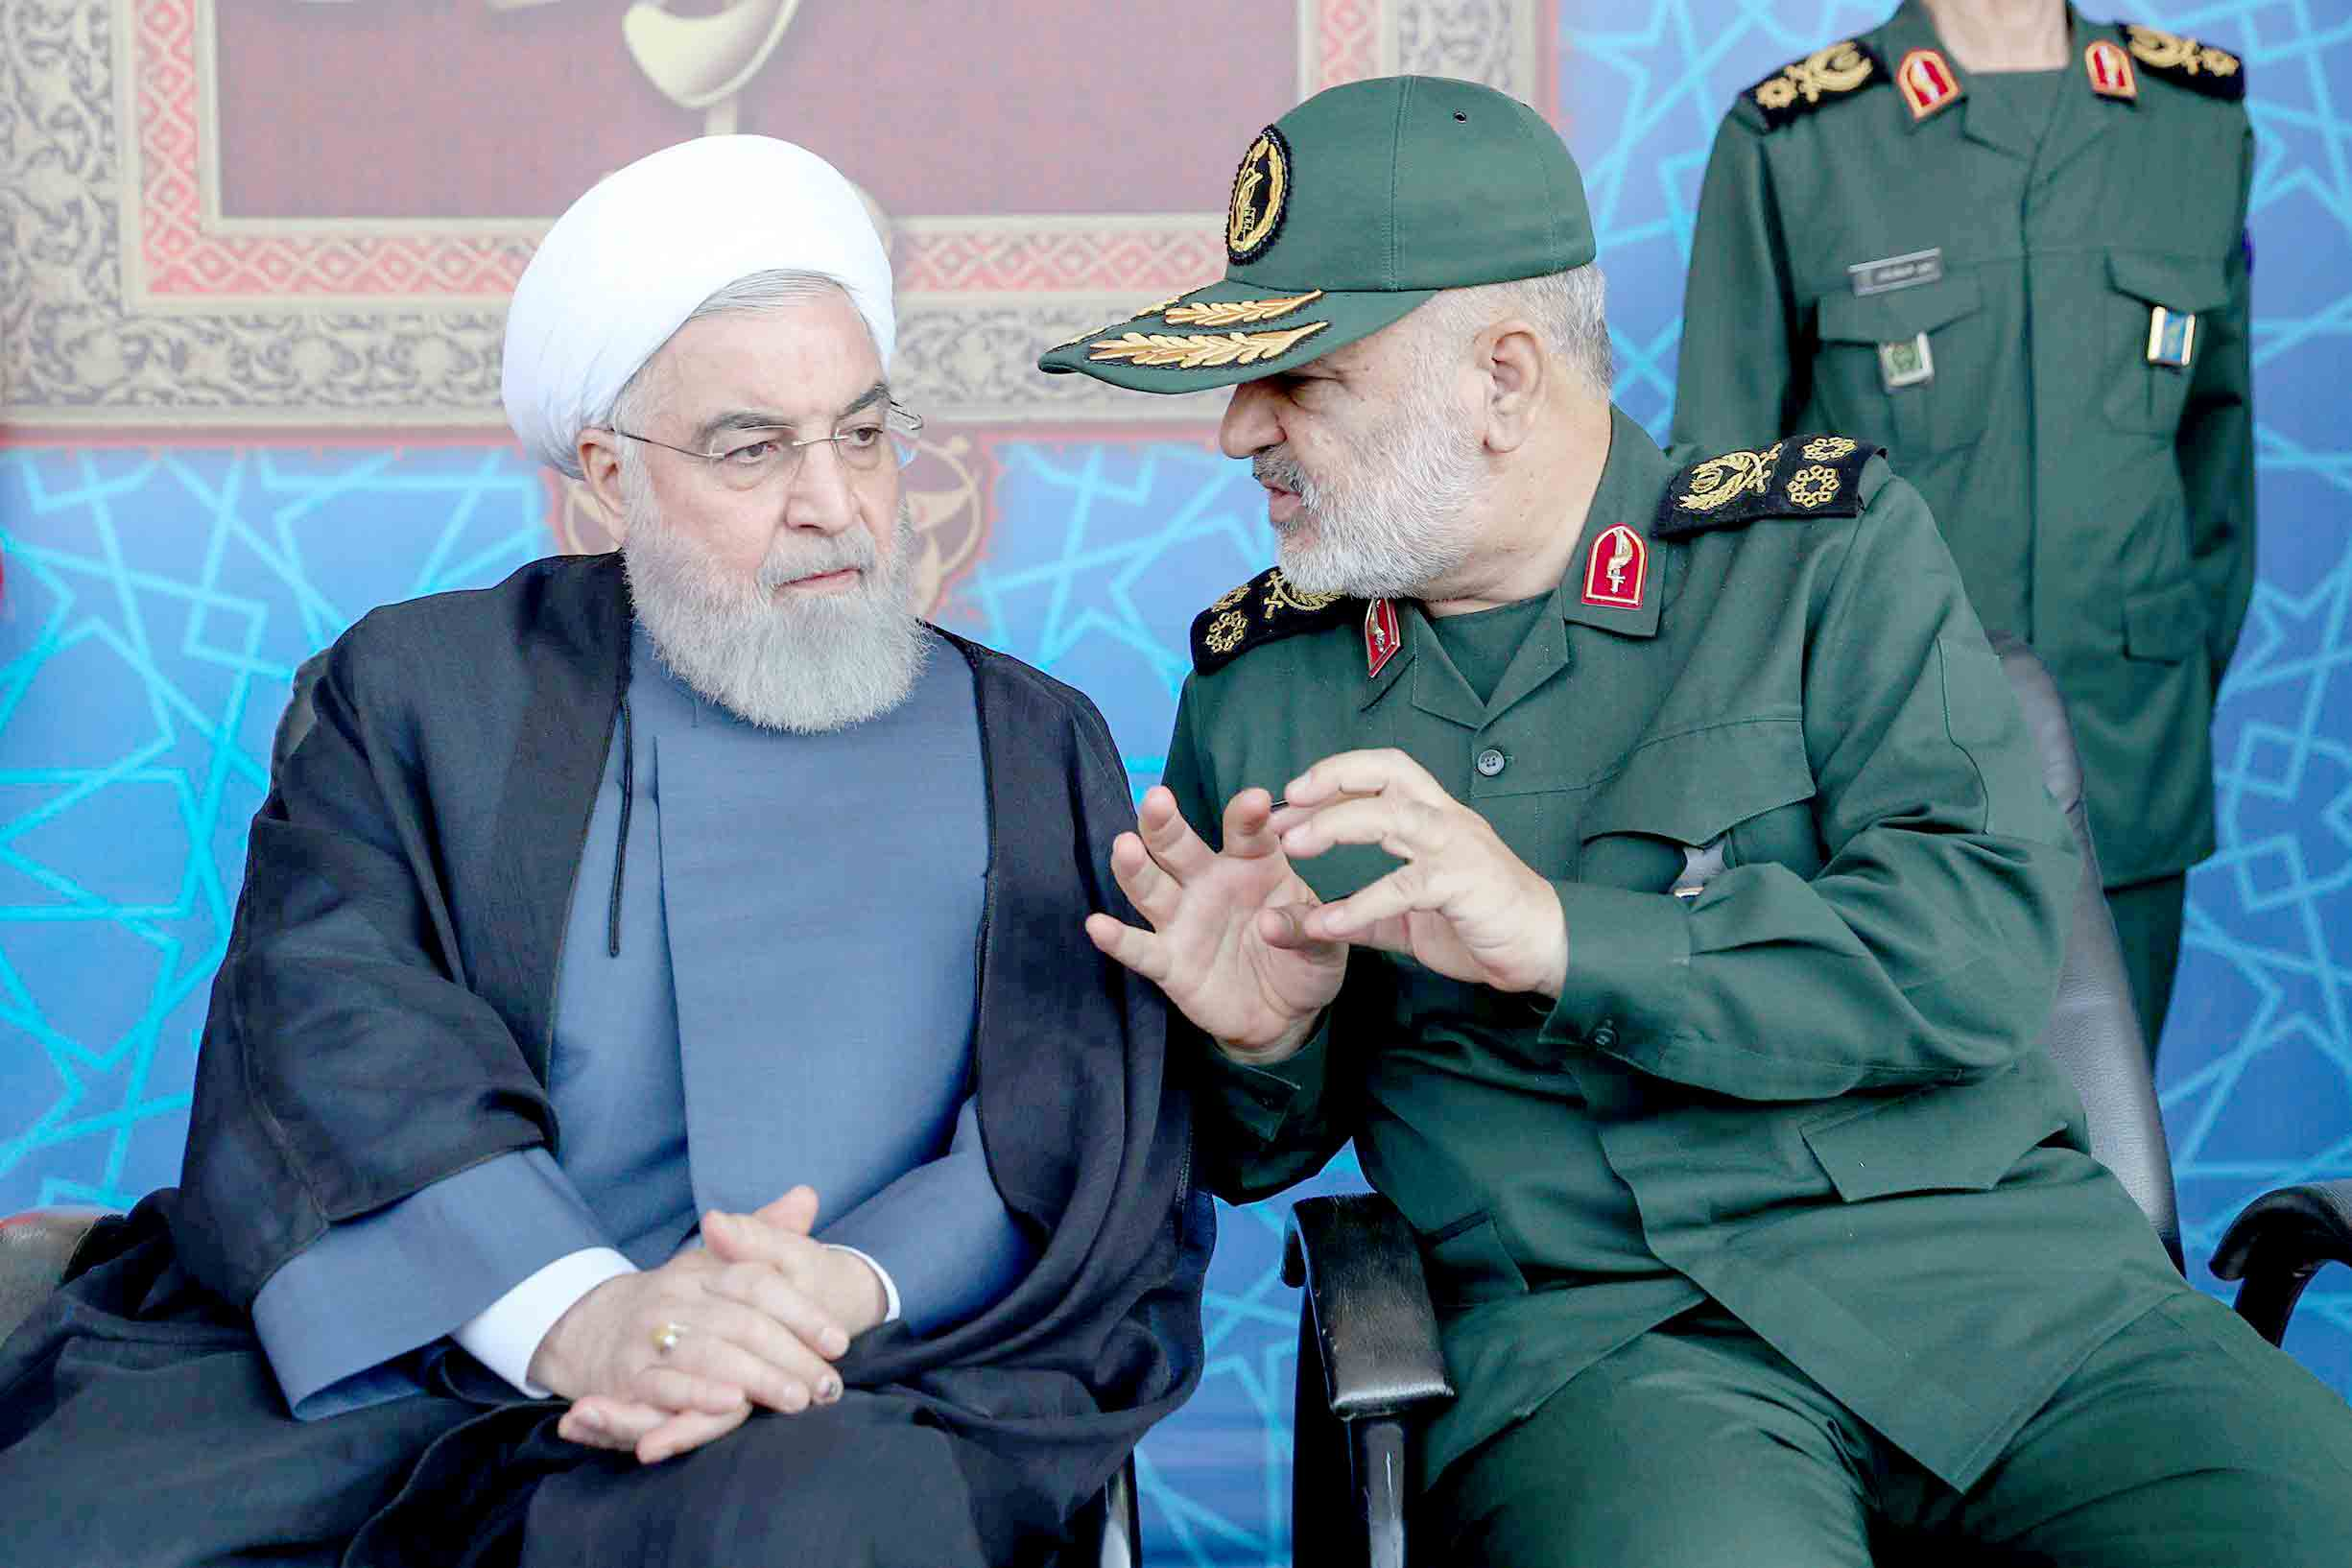 Brewing new plots? Iranian President Hassan Rohani (L) listens to Islamic Revolutionary Guard Corps Commander Major-General Hossein Salami as they attend a parade marking the anniversary of the outbreak of the devastating 1980-1988 war with Iraq, in Tehran, September 22.(AFP)